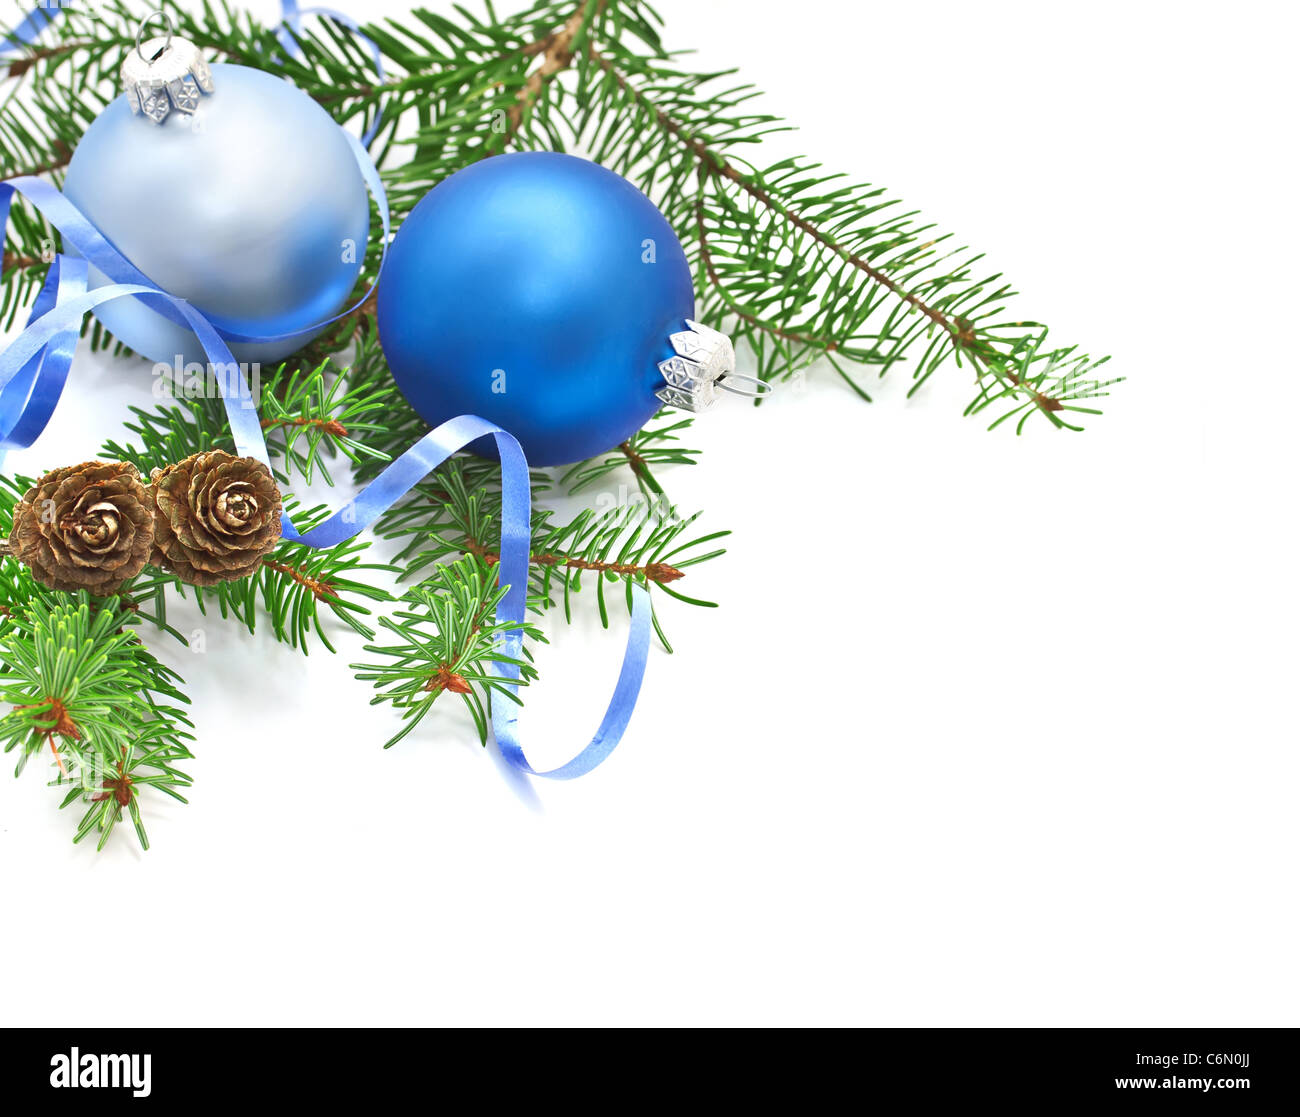 Sphere And Cone Stock Photos & Sphere And Cone Stock Images - Alamy